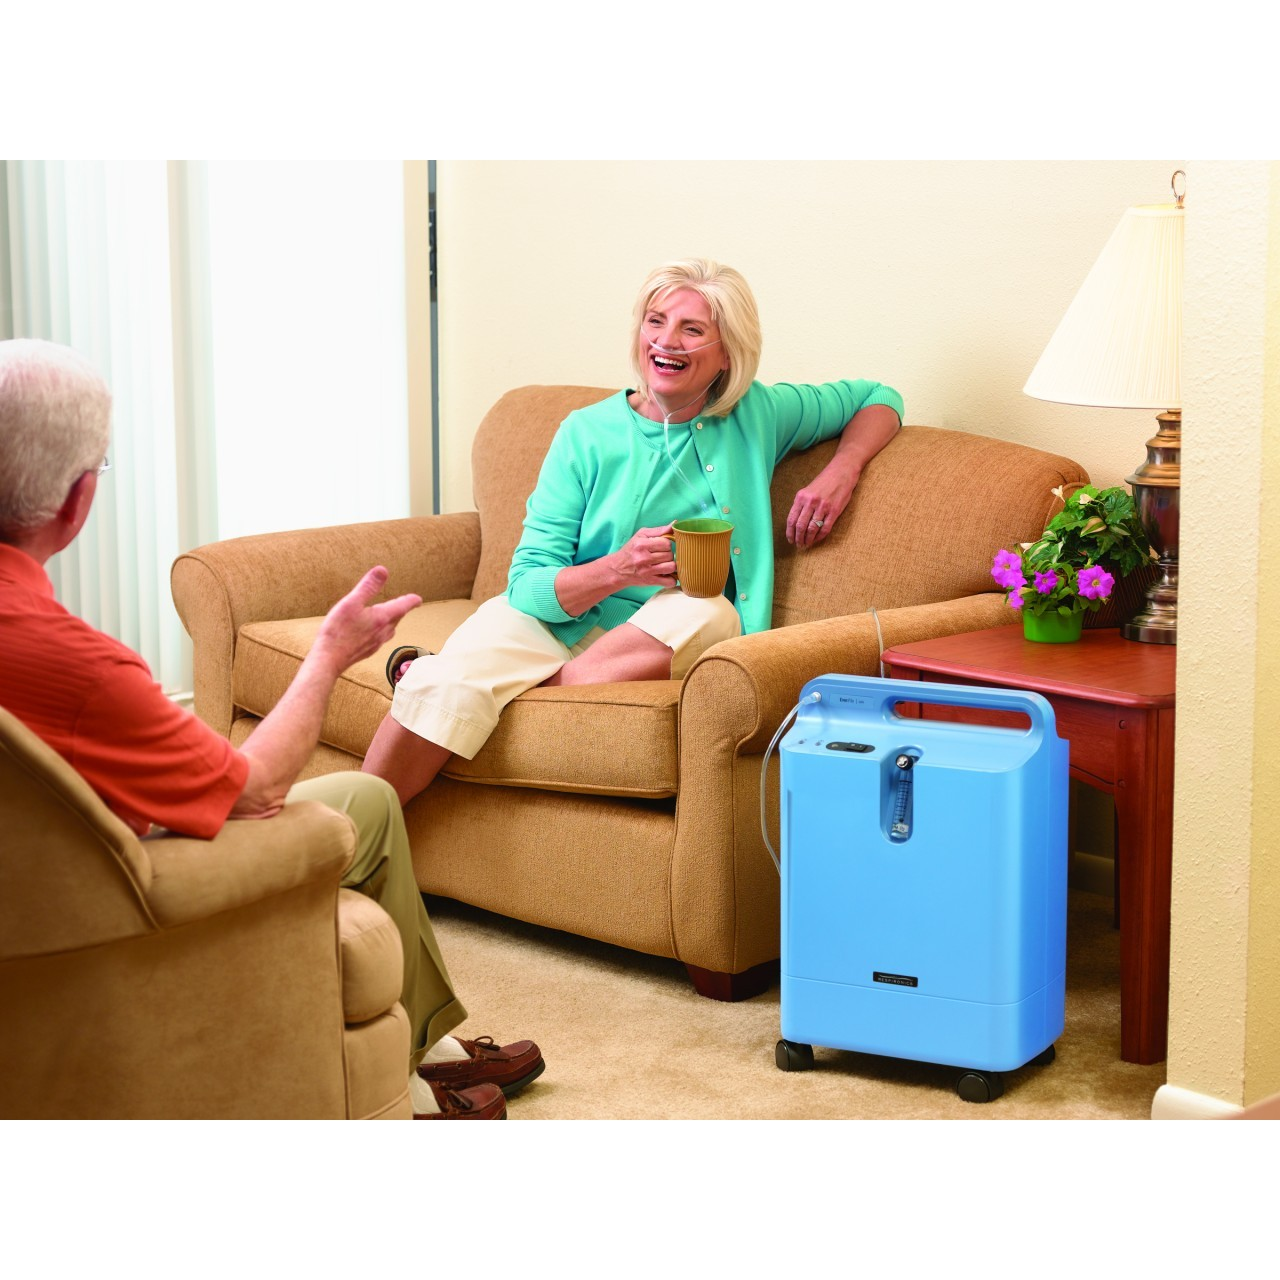 Woman sitting on couch with Respironics Everflo Stationary Oxygen Concentrator